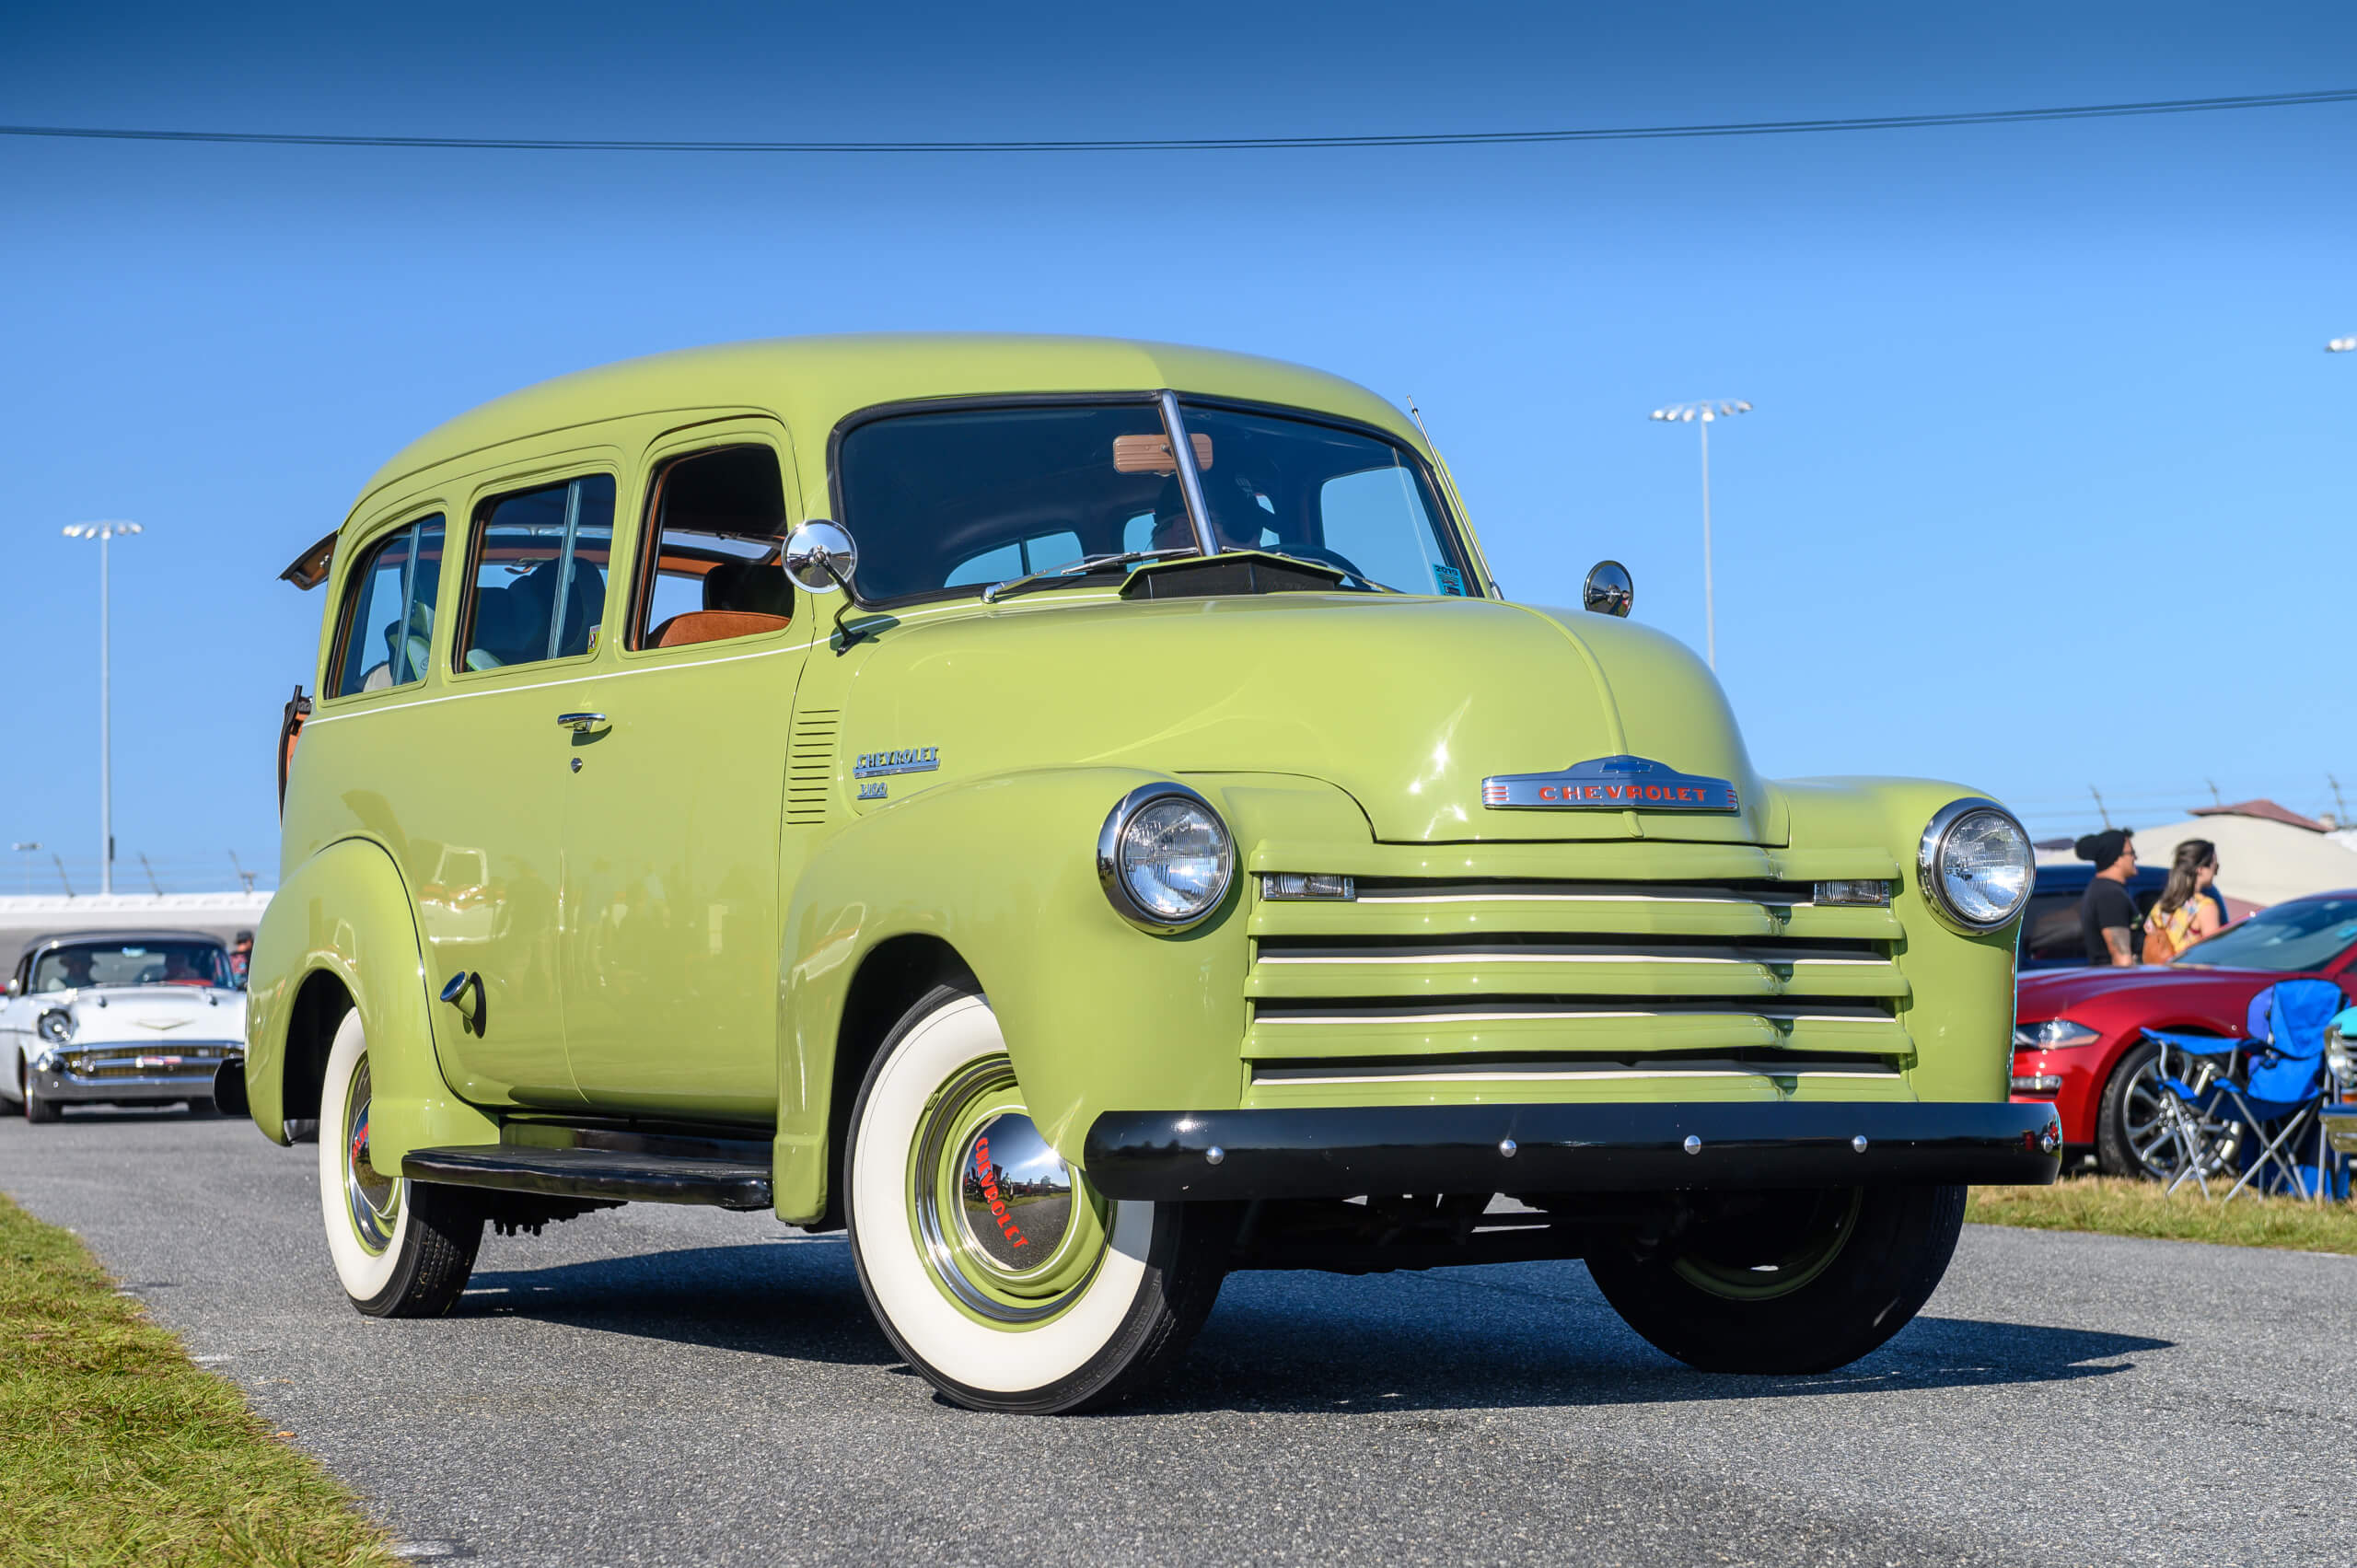 This 1949 Chevrolet Suburban Carryall was pulled from woods and fully restored.